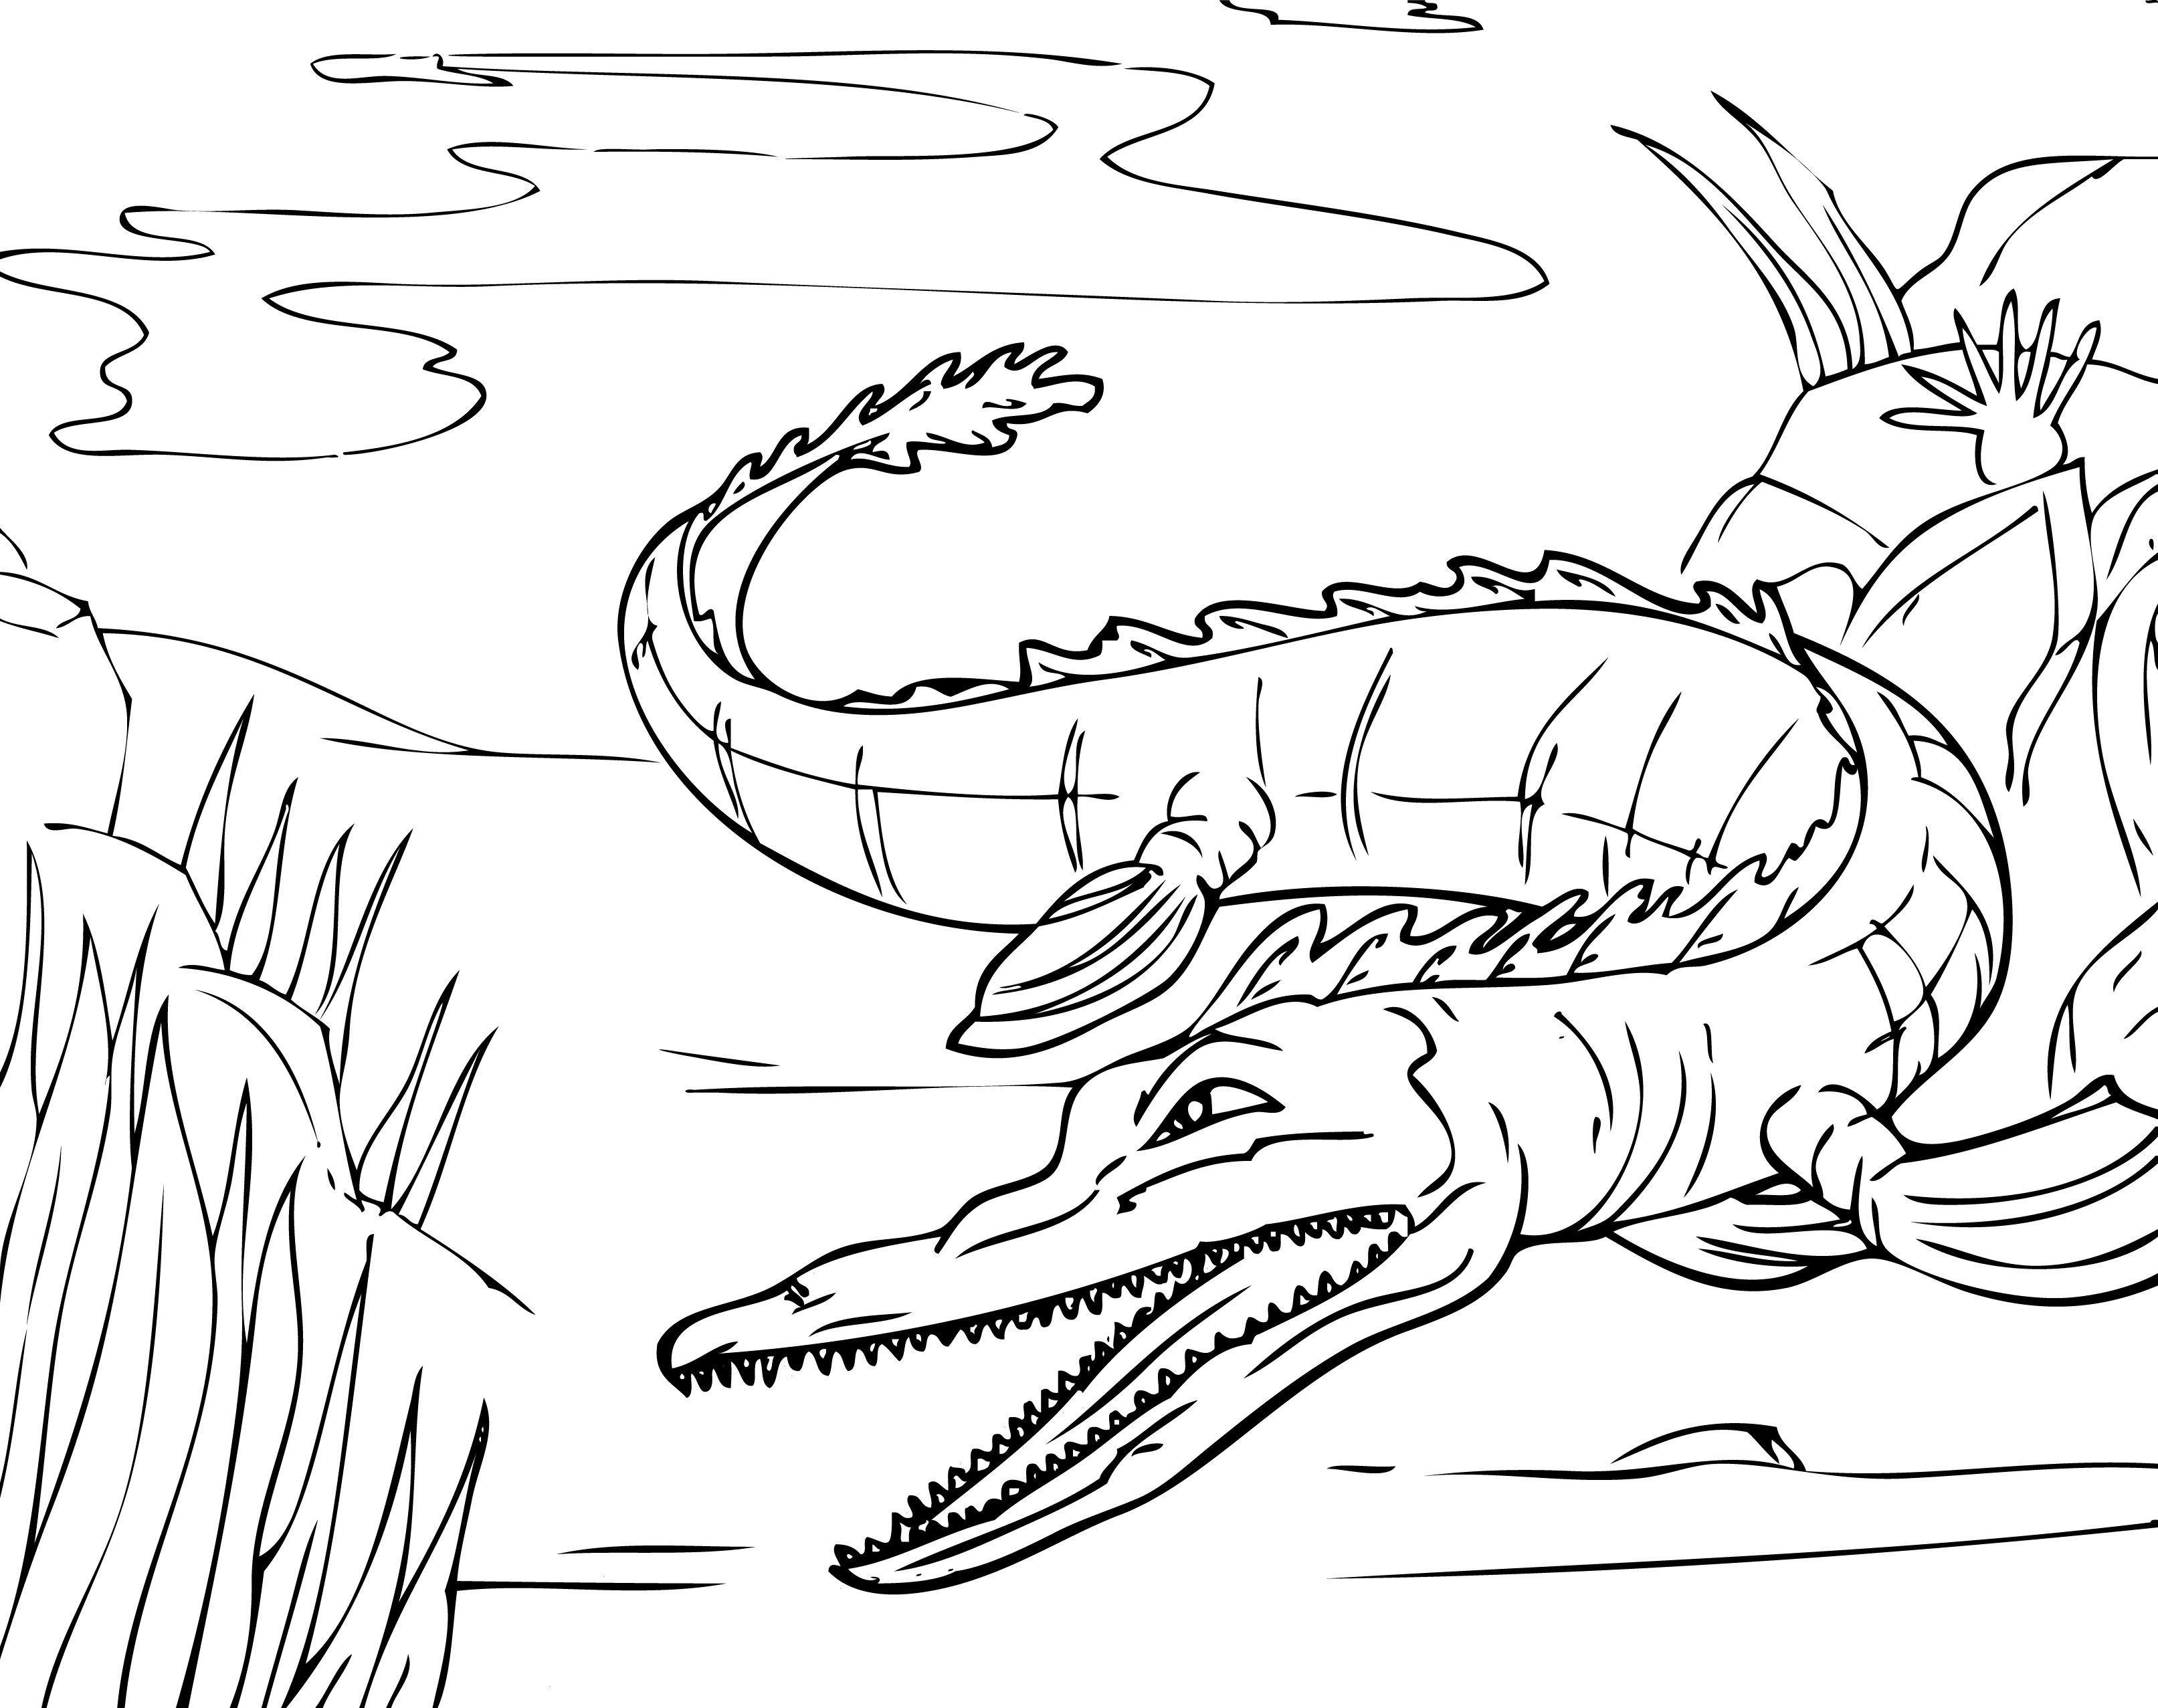 Free coloring pages alligator - Free Printable Alligator Coloring Pages For Kids